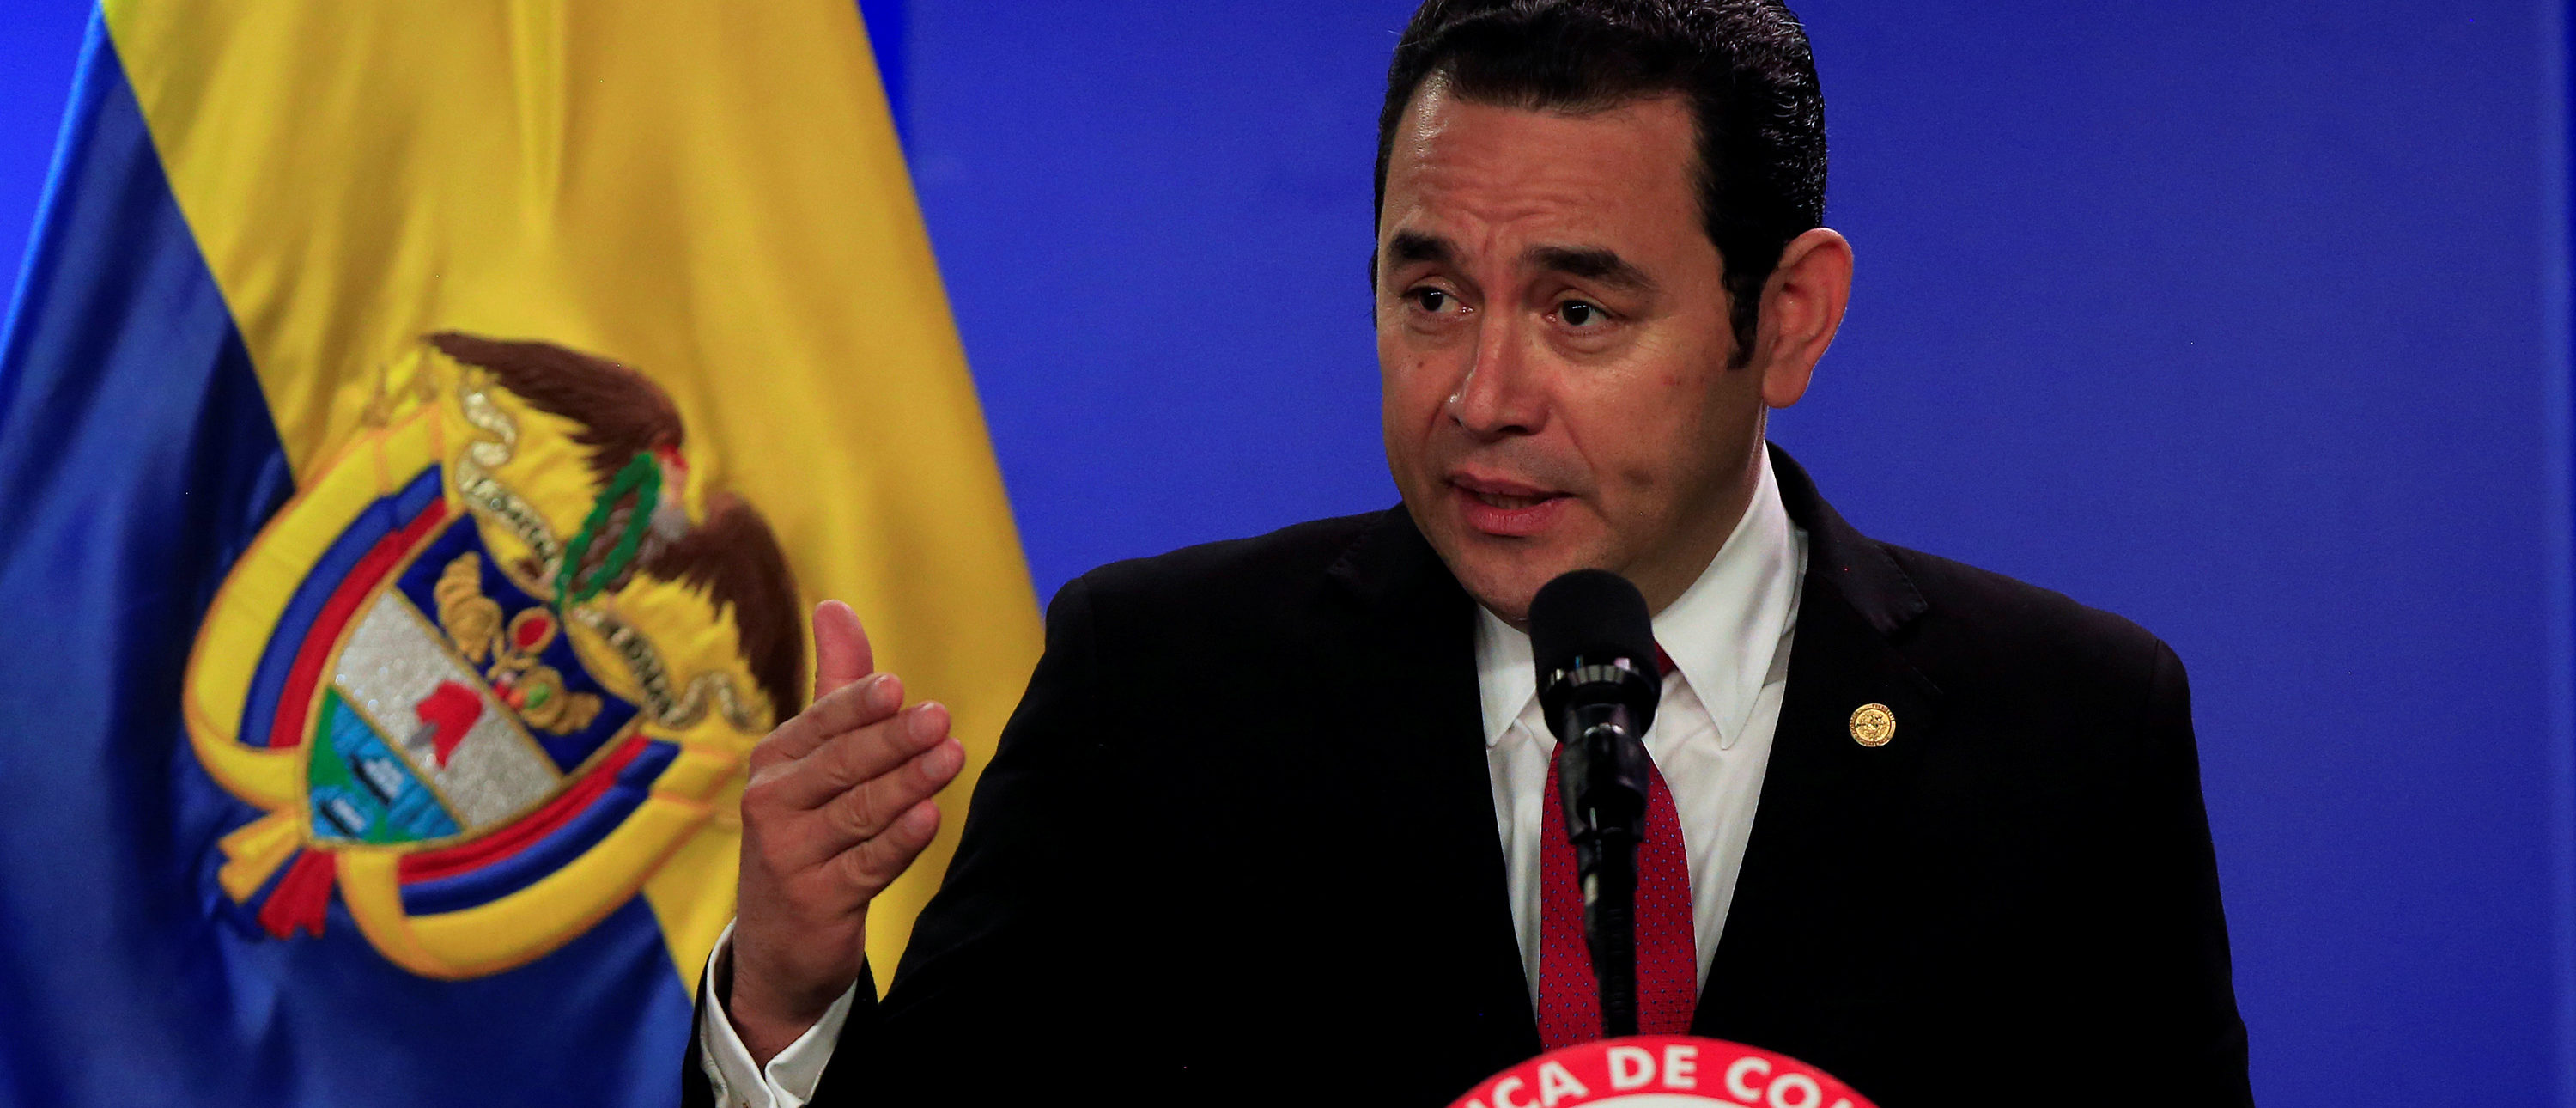 Guatemala's President Jimmy Morales speaks during a news conference in Bogota, Colombia February 23, 2018. REUTERS/Jaime Saldarriaga - RC154D49B280